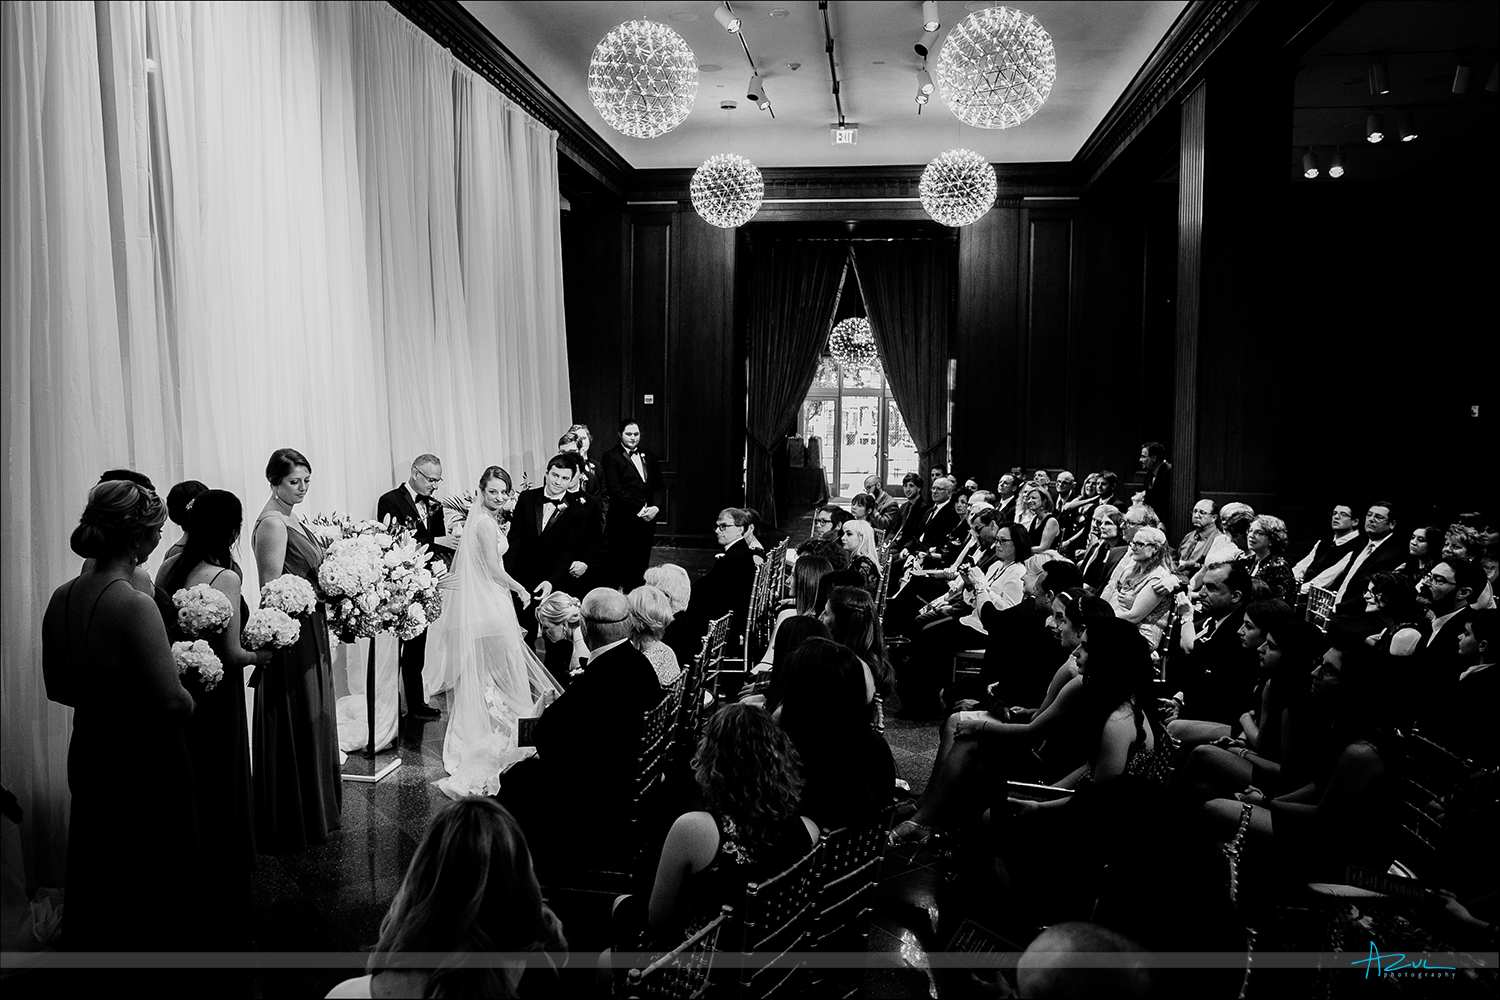 21c Museum & Hotel wedding day beautiful ceremony in Durham NC